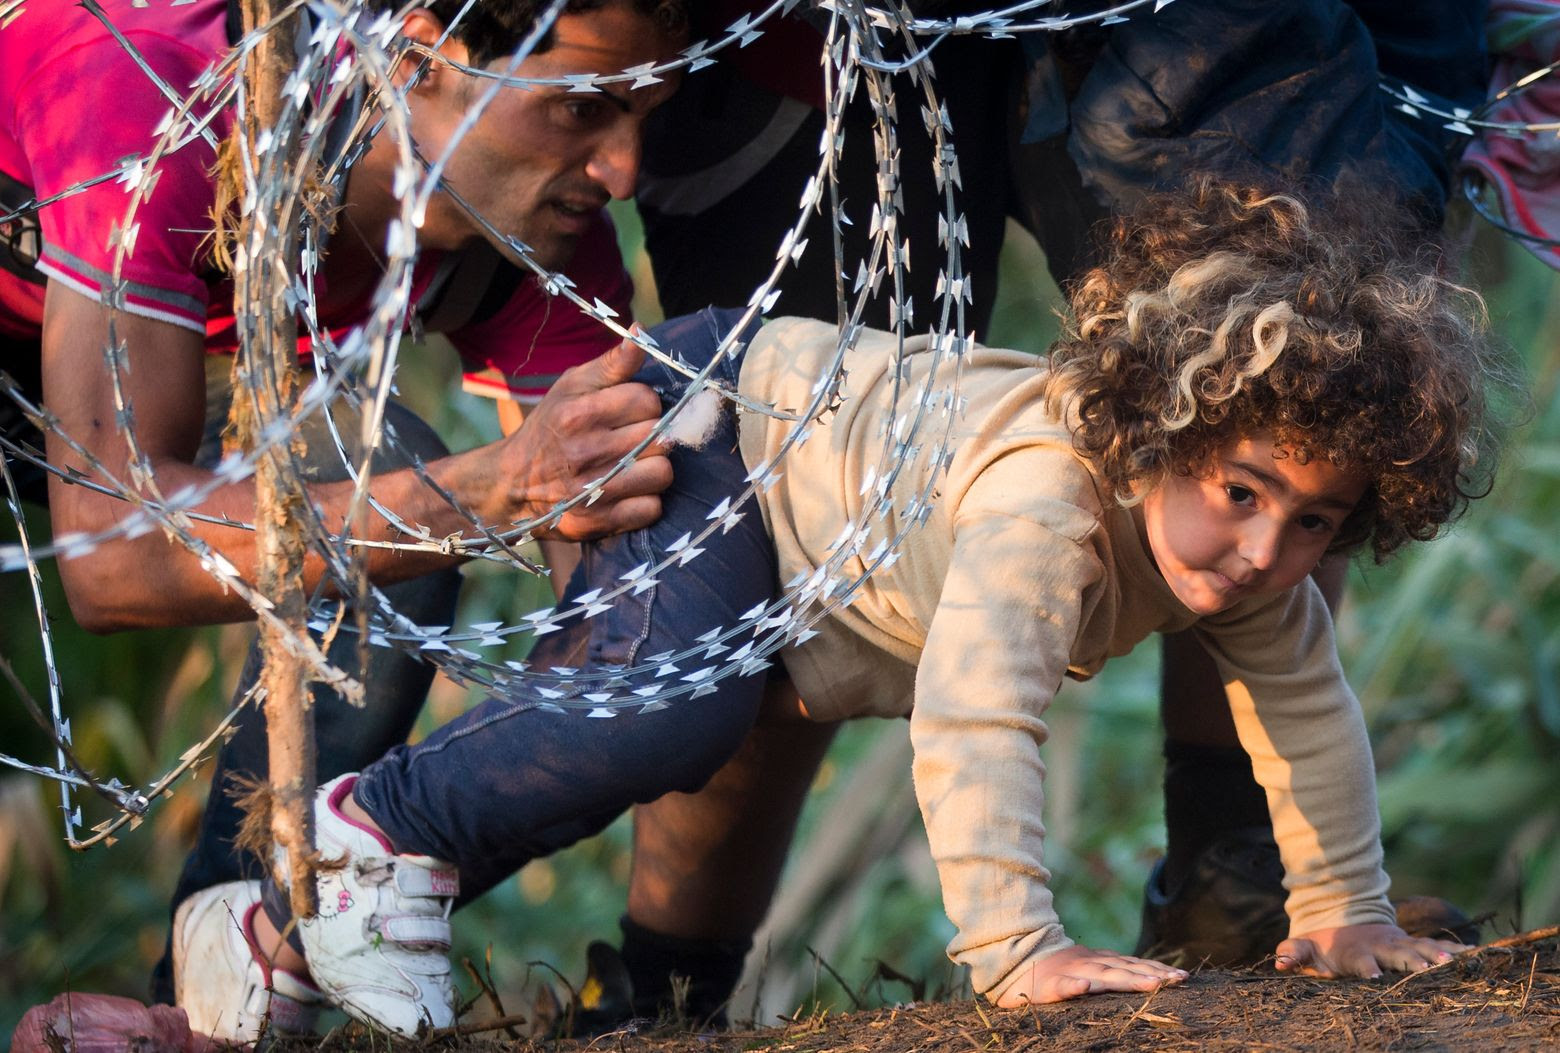 A refugee girl moves under barbed wire as she crosses from Serbia to Hungary, in Roszke, Thursday, Aug. (AP Photo/Darko Bandic)